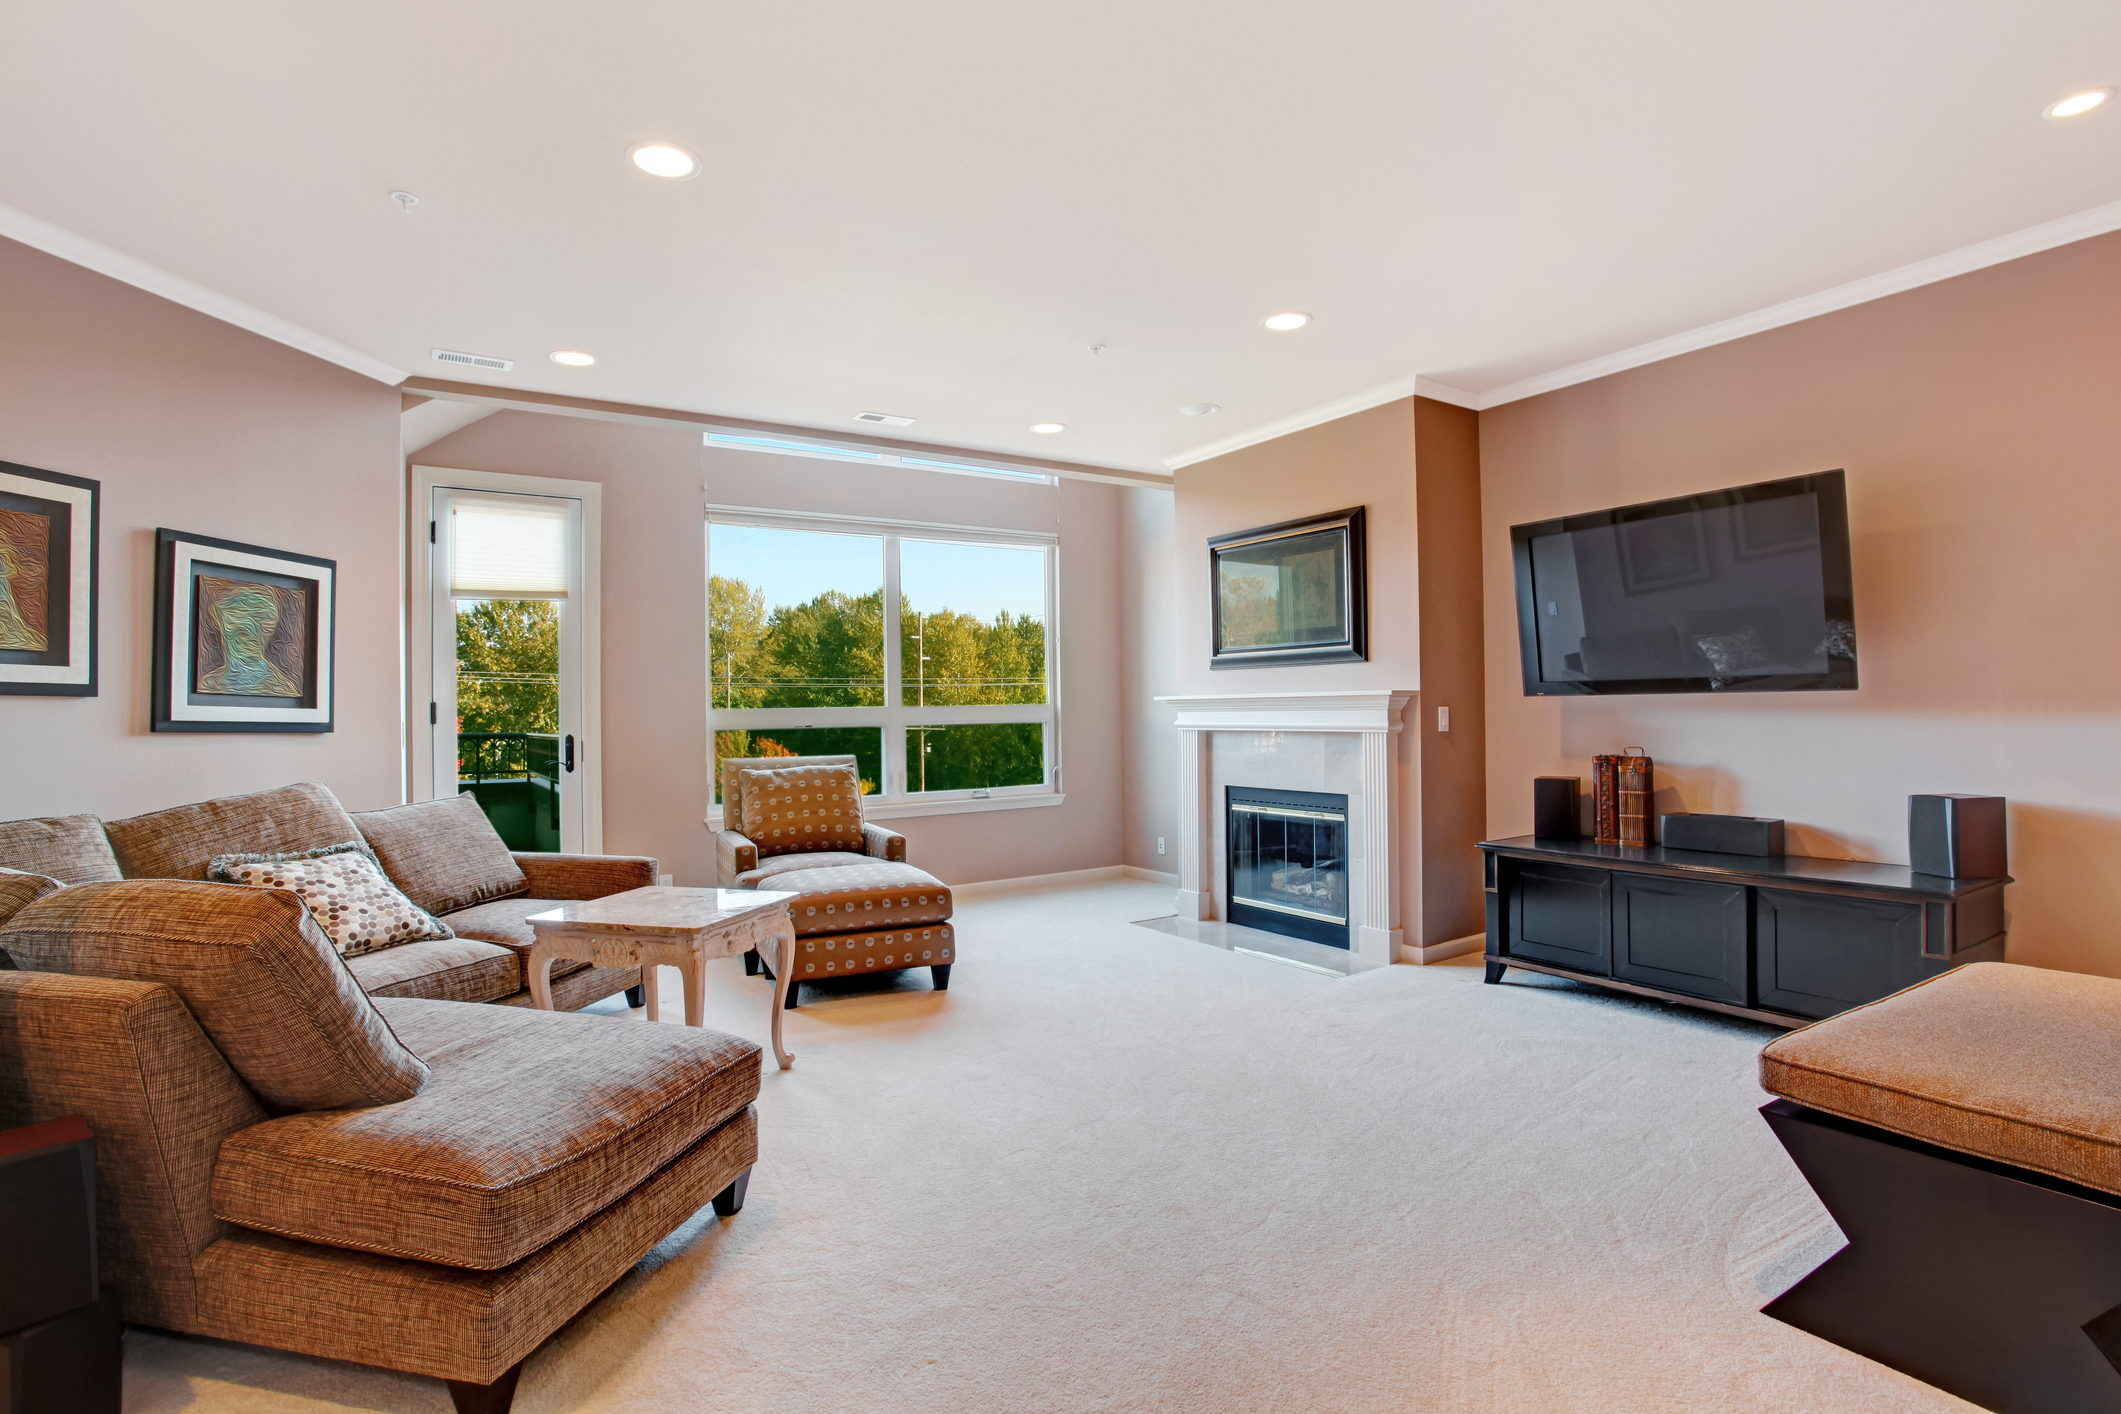 Spacious living room with fireplace and walkout deck.